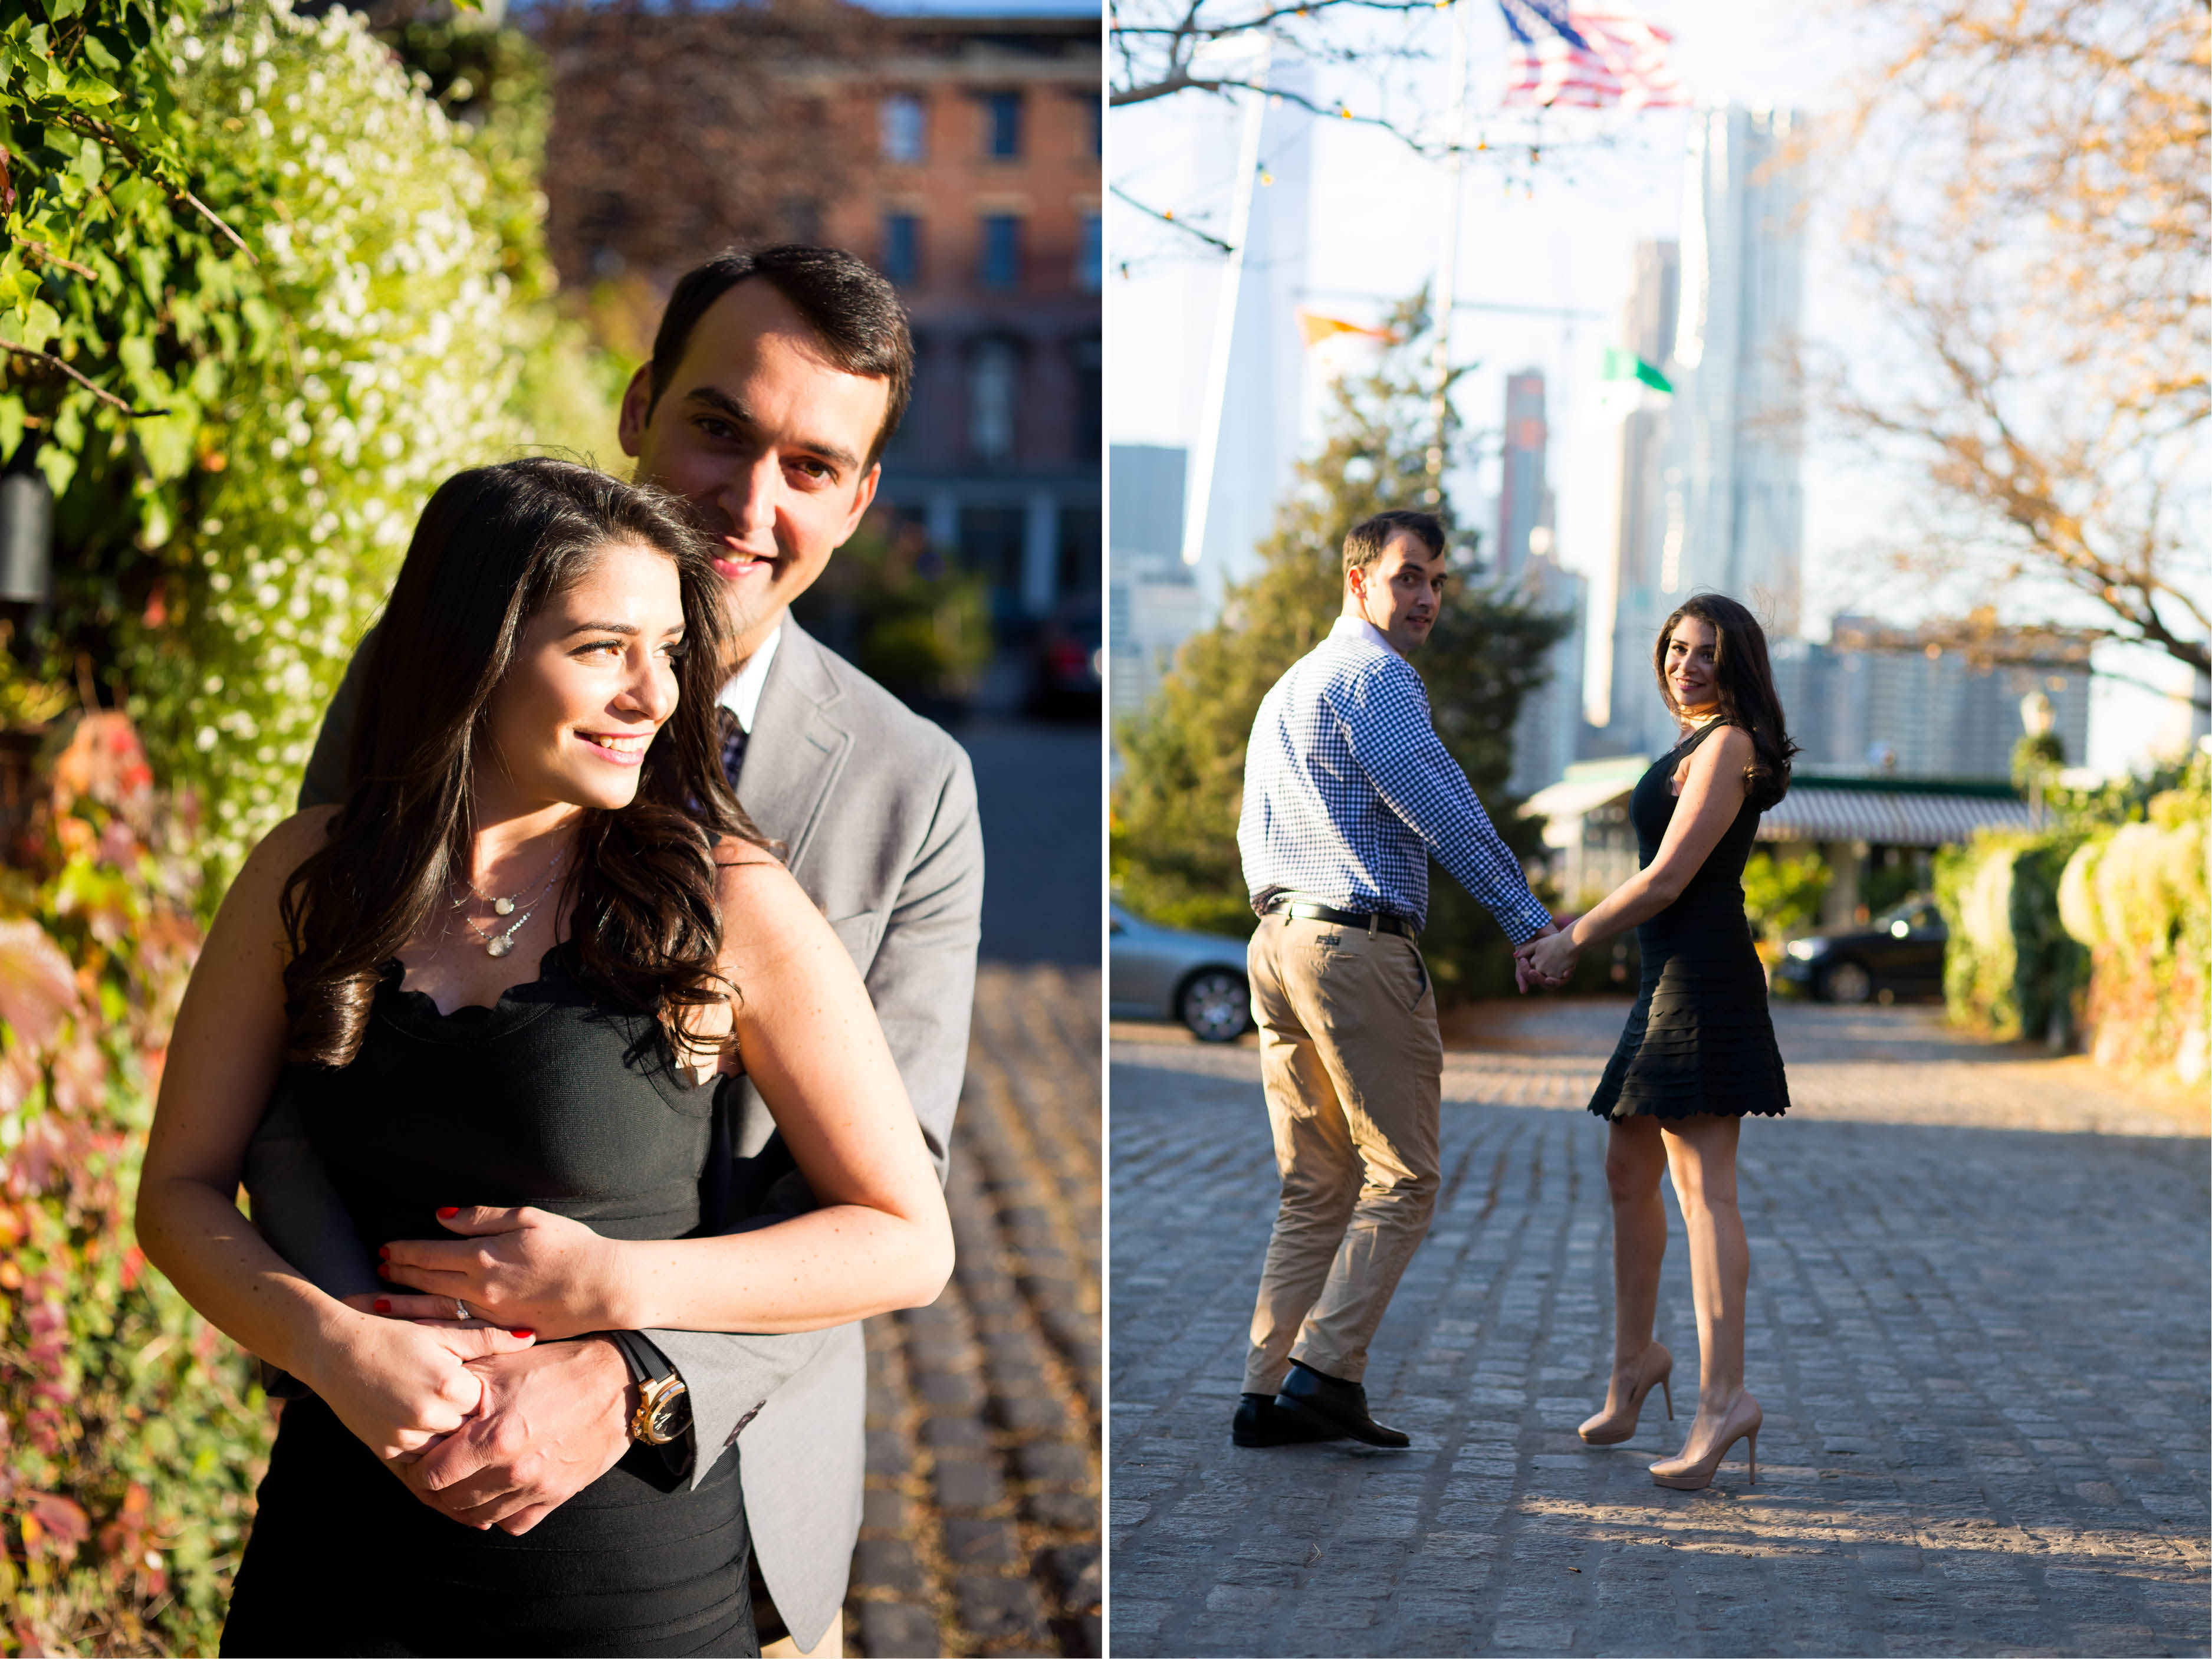 Emma_cleary_photography Dumbo Engagement shoot5